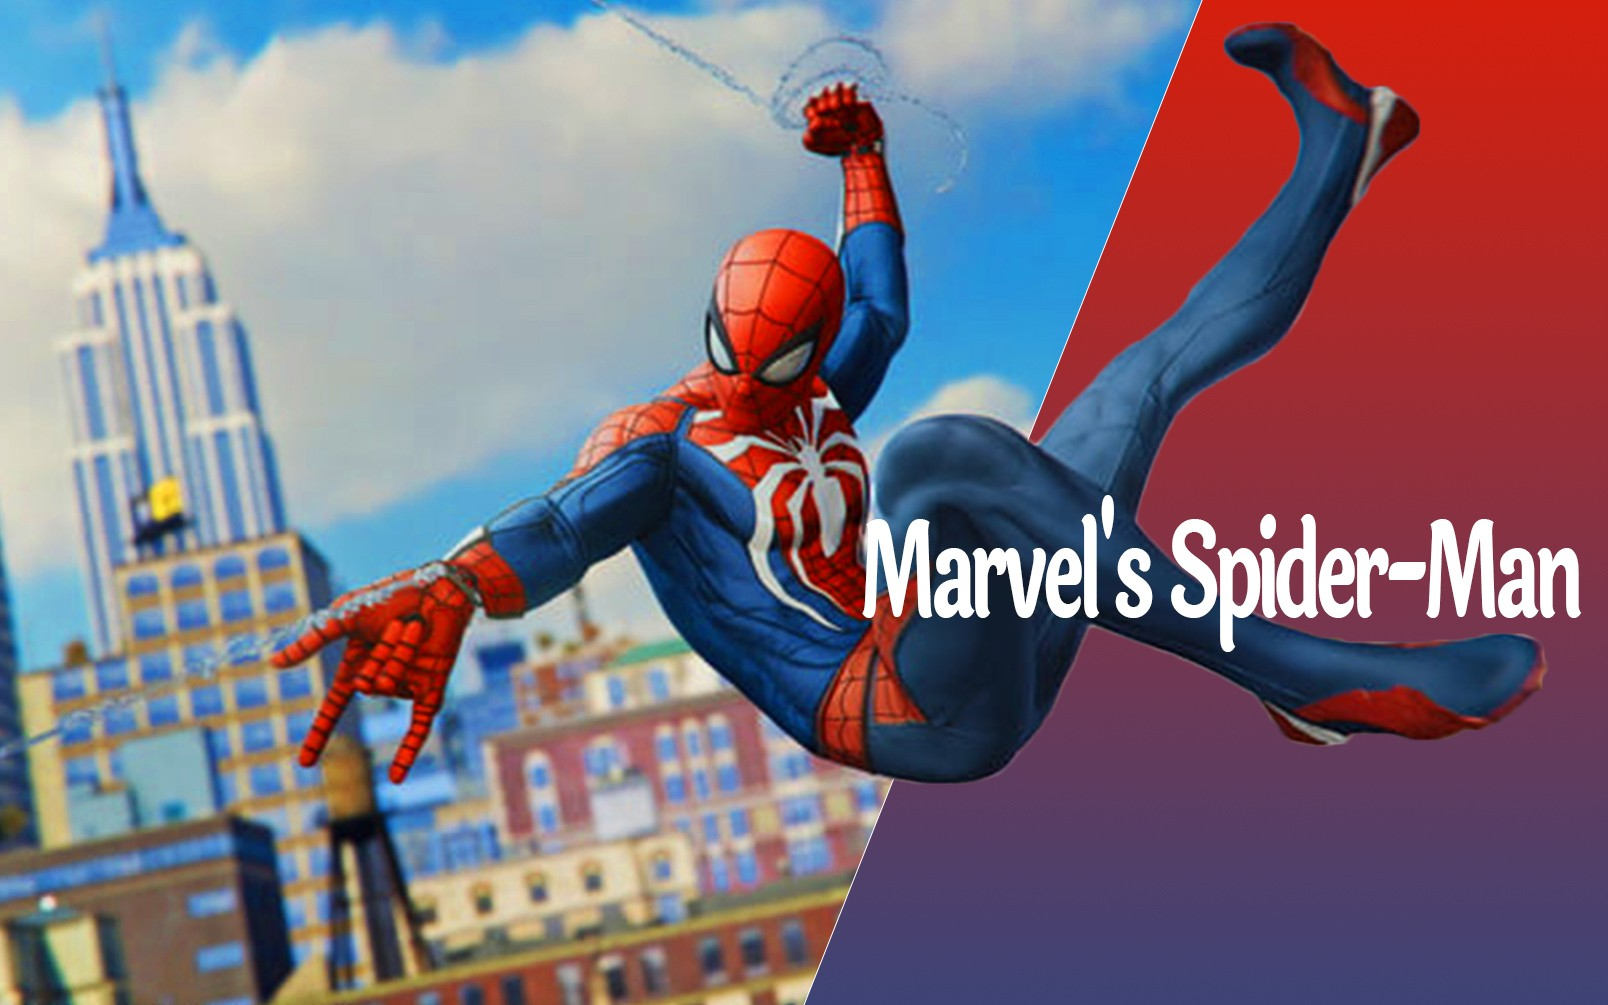 Marvel's-Spider-Man-video-games-best-Surprising-games-2020